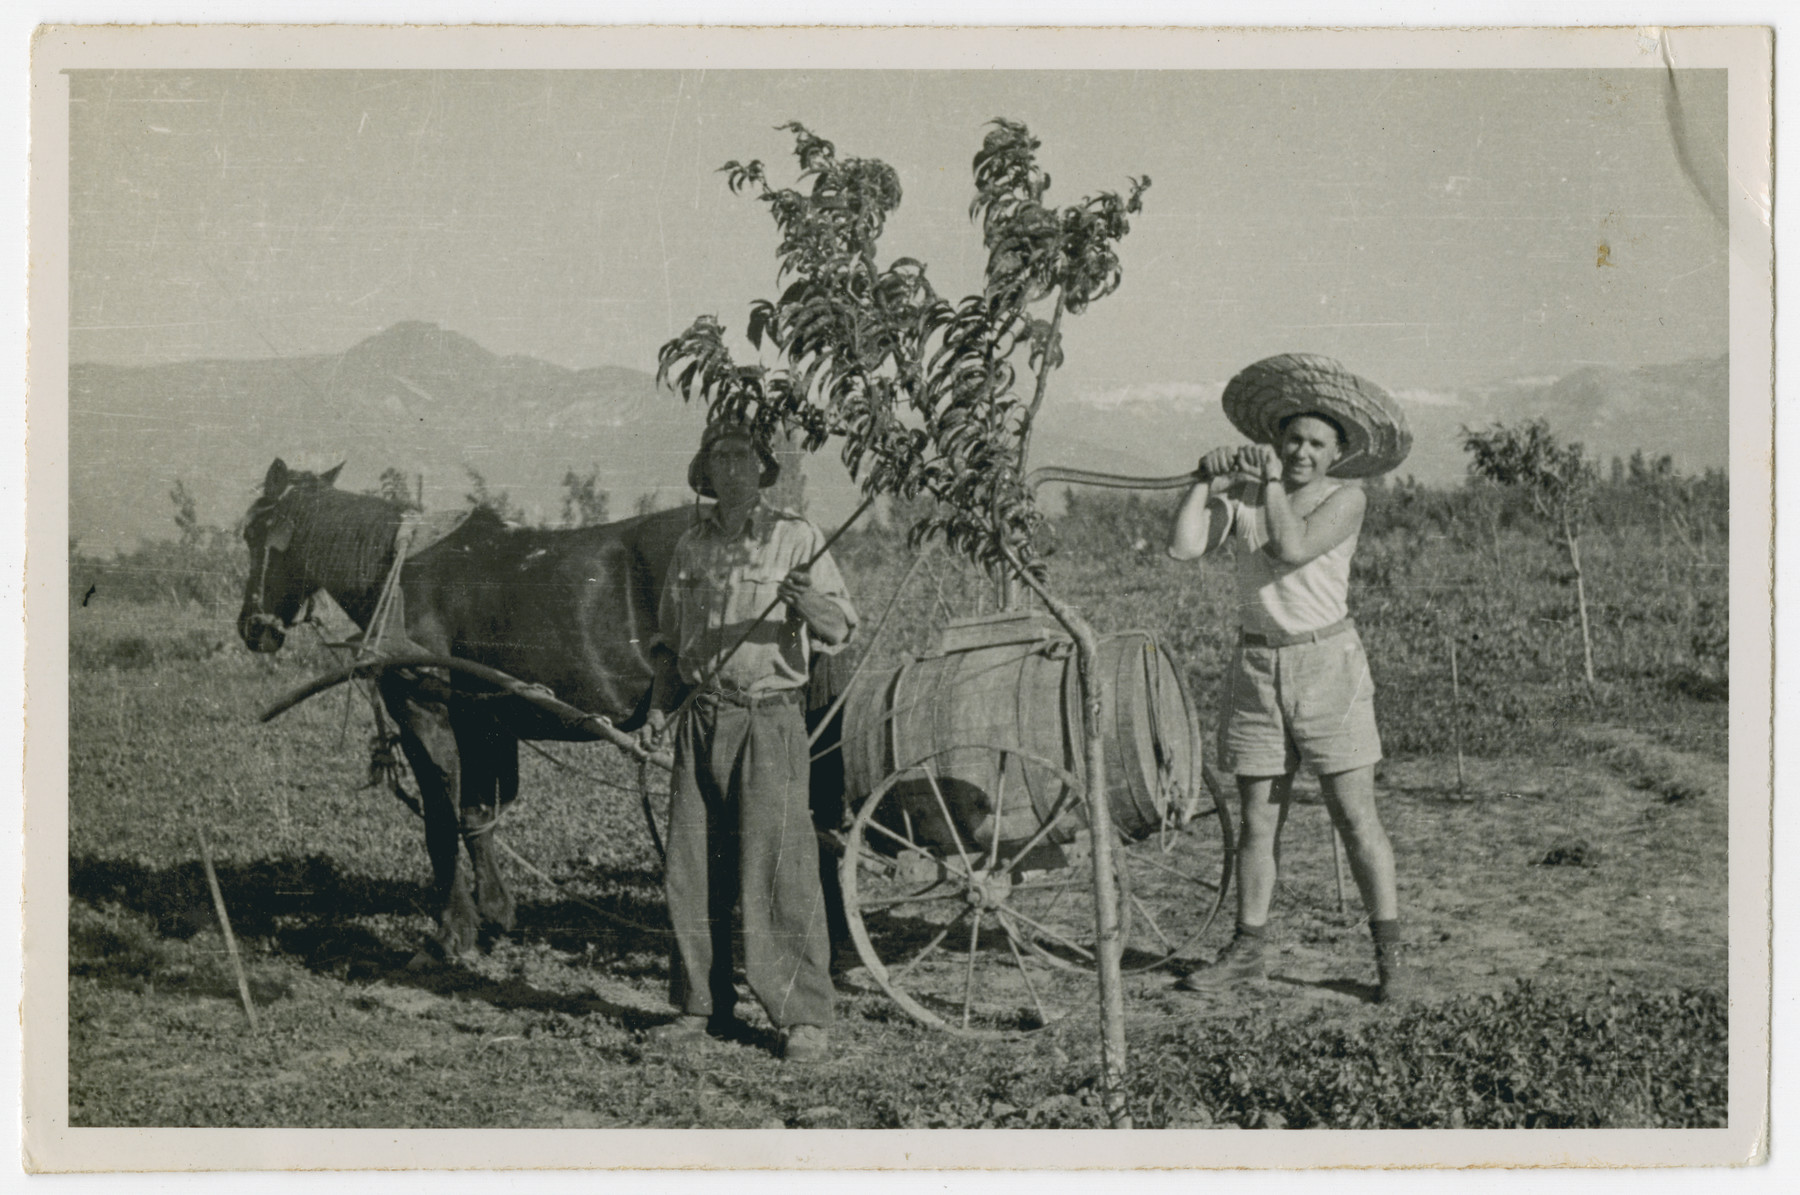 """Photograph from an album entitled, """"Hacshara Kidma Chile,""""  documenting life on a postwar Shomer Hatzair Zionist agricultural collective in Chile.  Young men spray a fruit tree with pesticides from a barrel on a horse-drawn cart."""